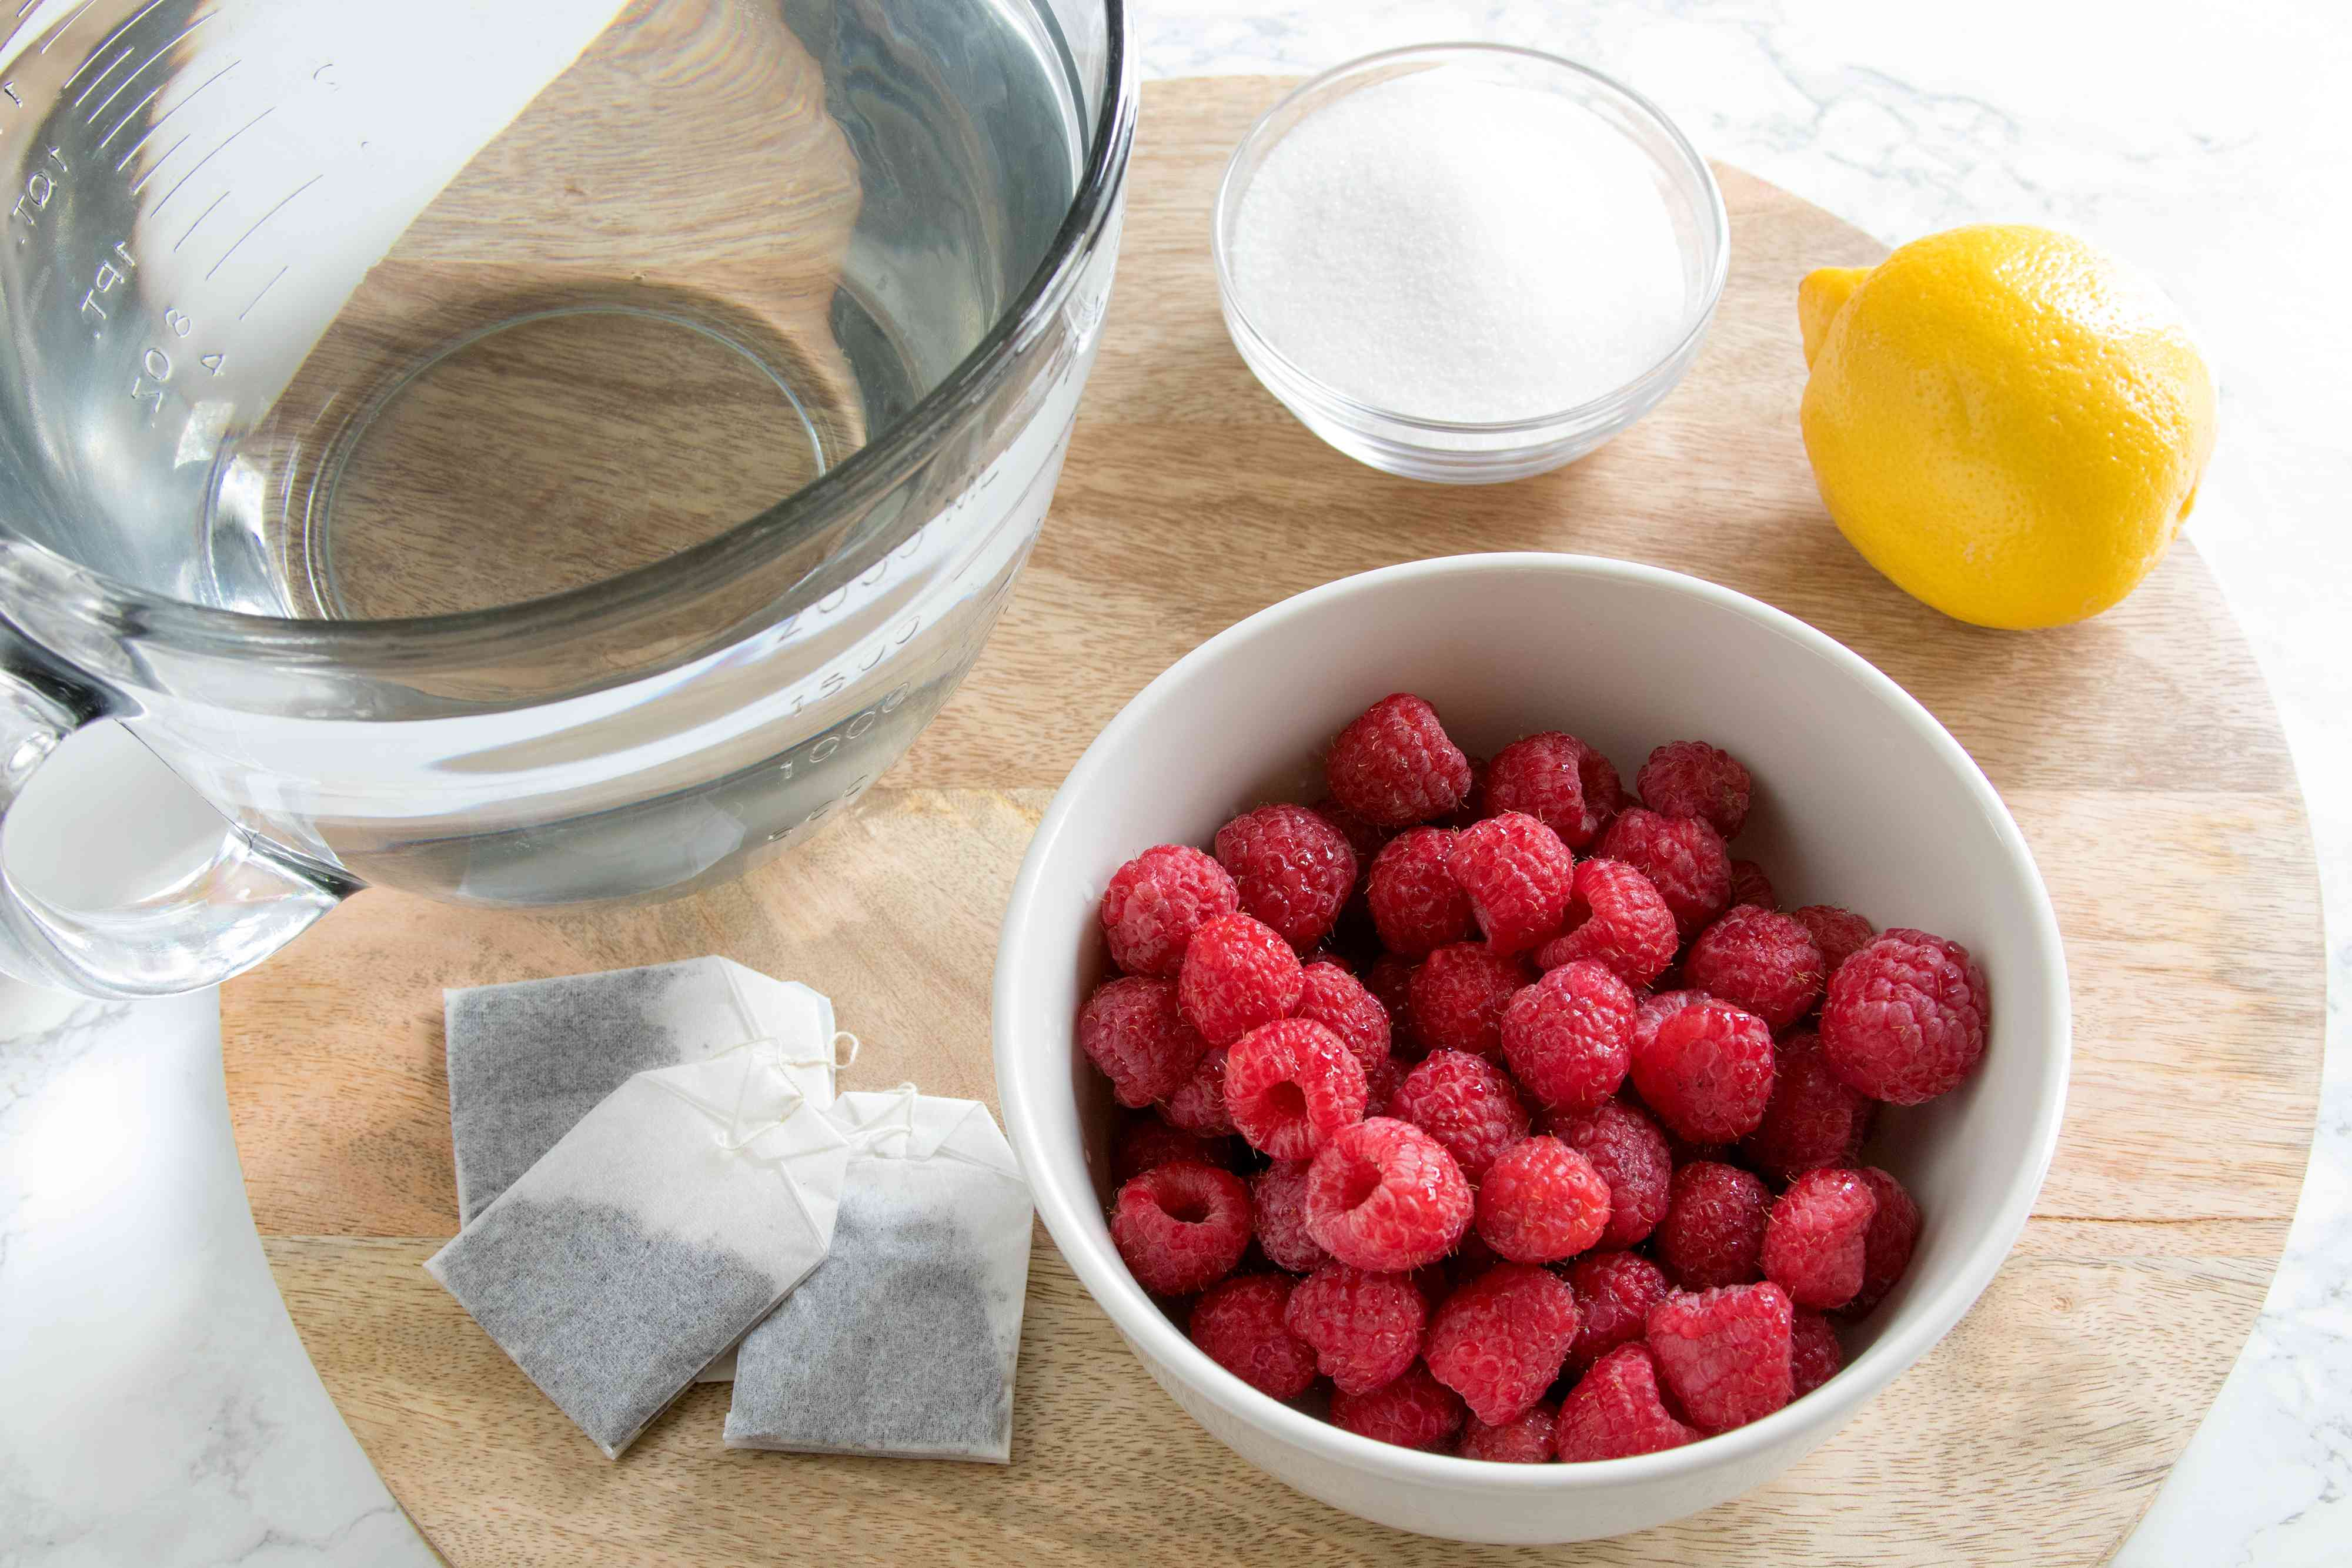 Ingredients for Raspberry Iced Tea